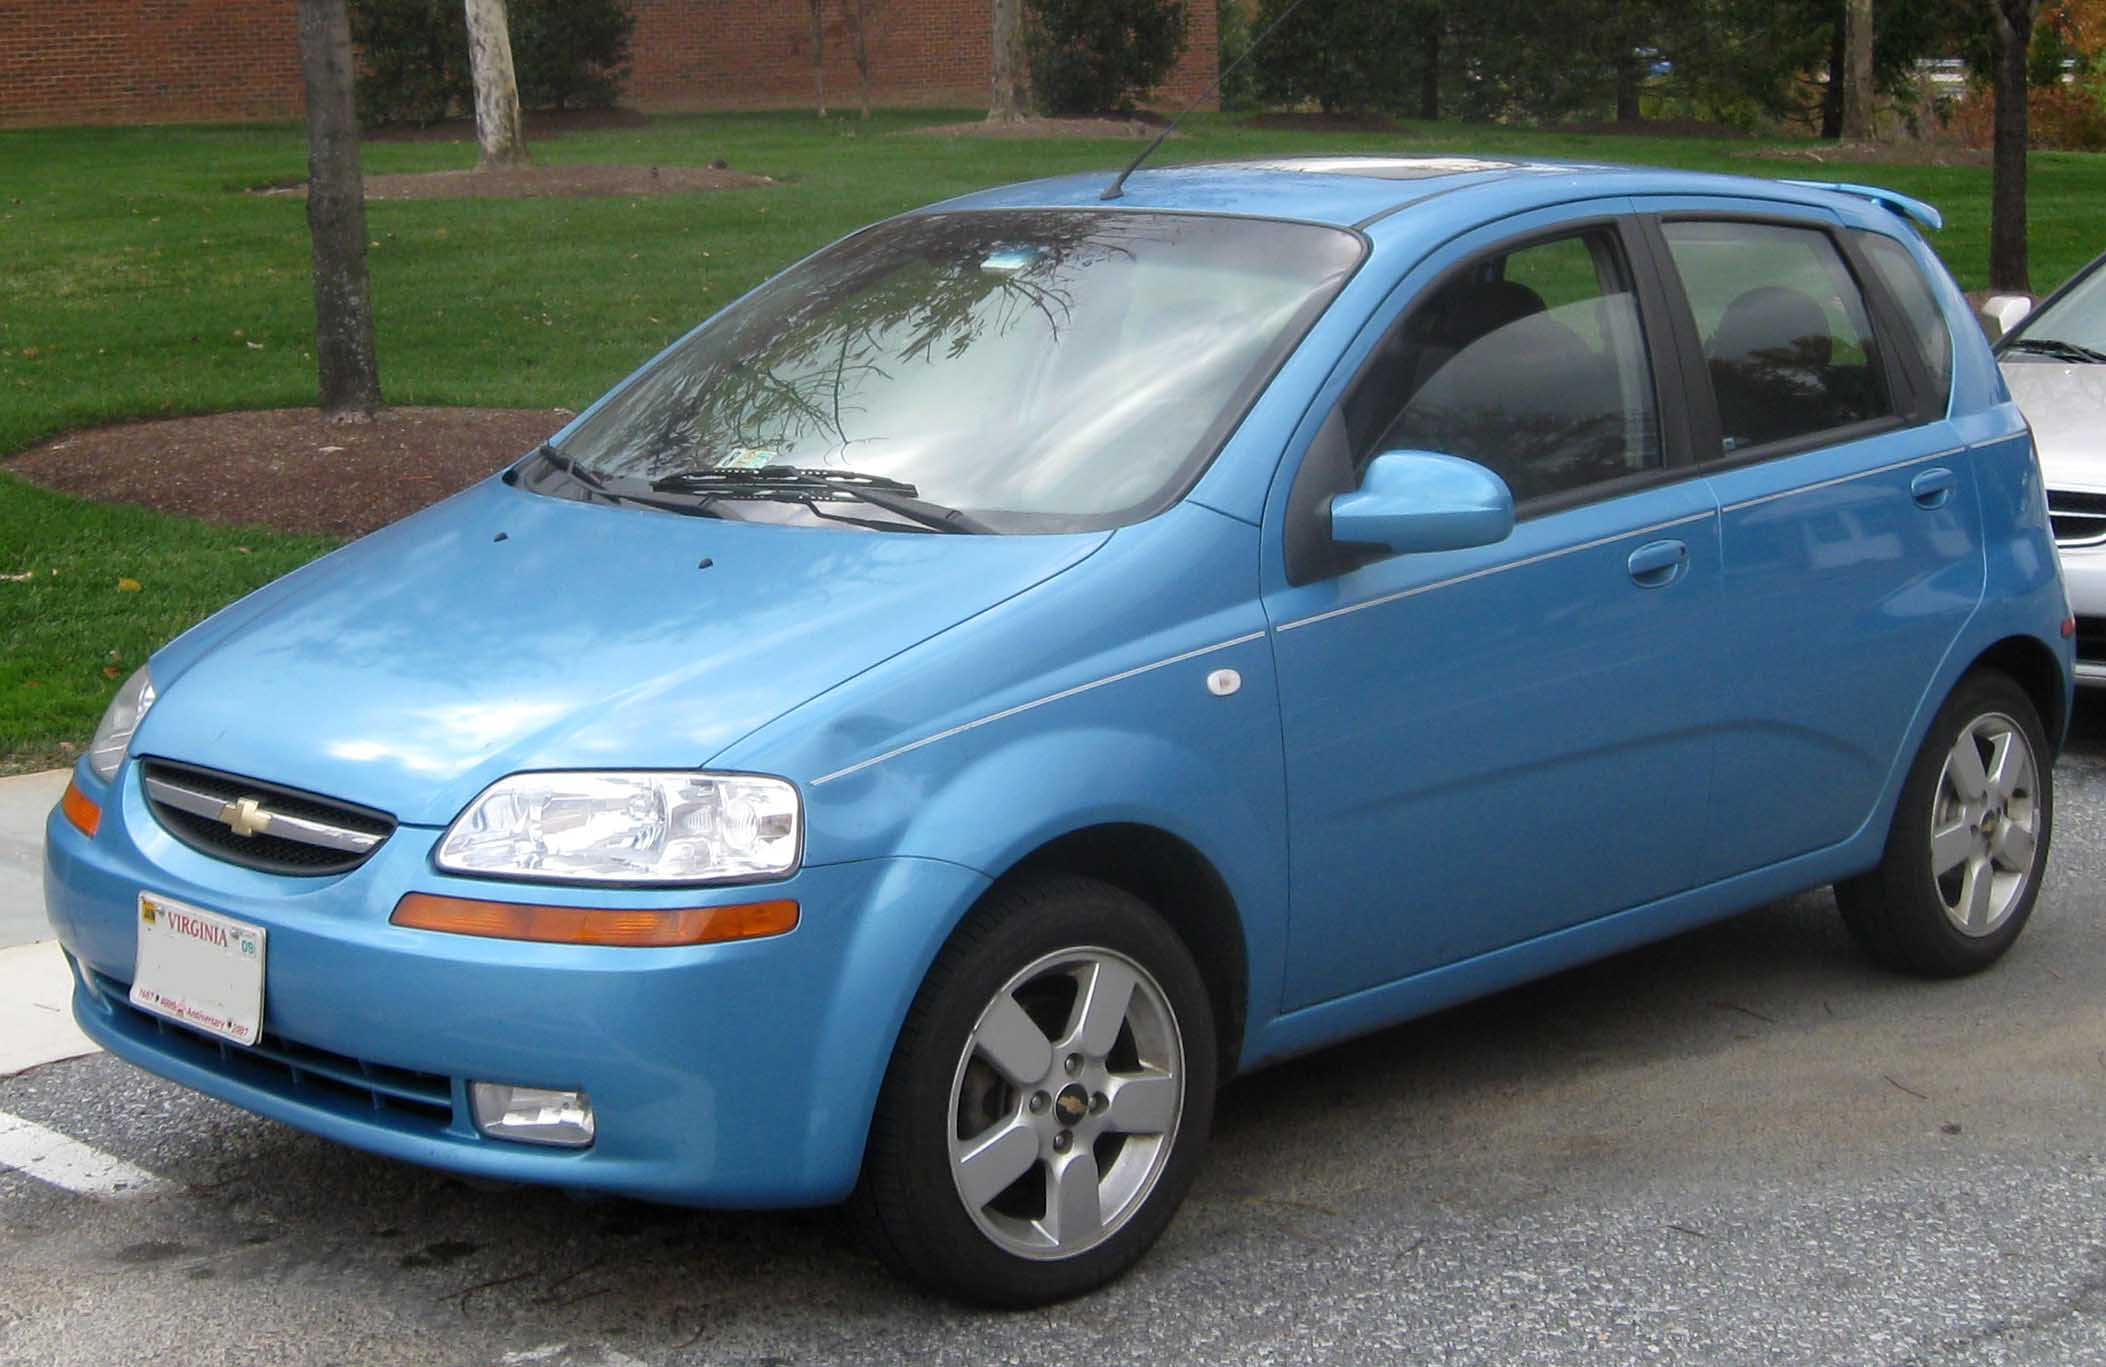 2010 Chevrolet Aveo Ii Hatchback Pictures Information And Specs Auto Database Com